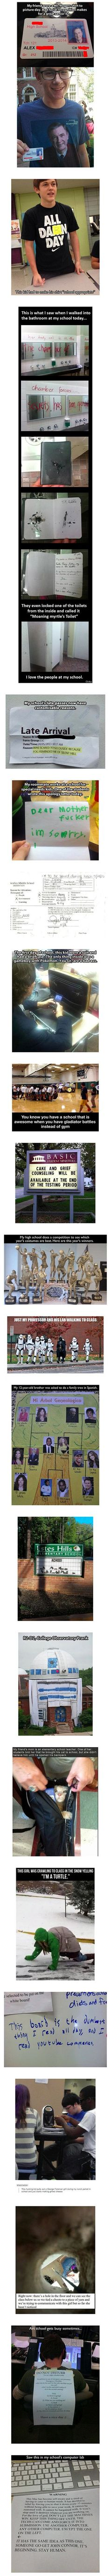 Here are some funny and geeky things that have been spotted at schools.: